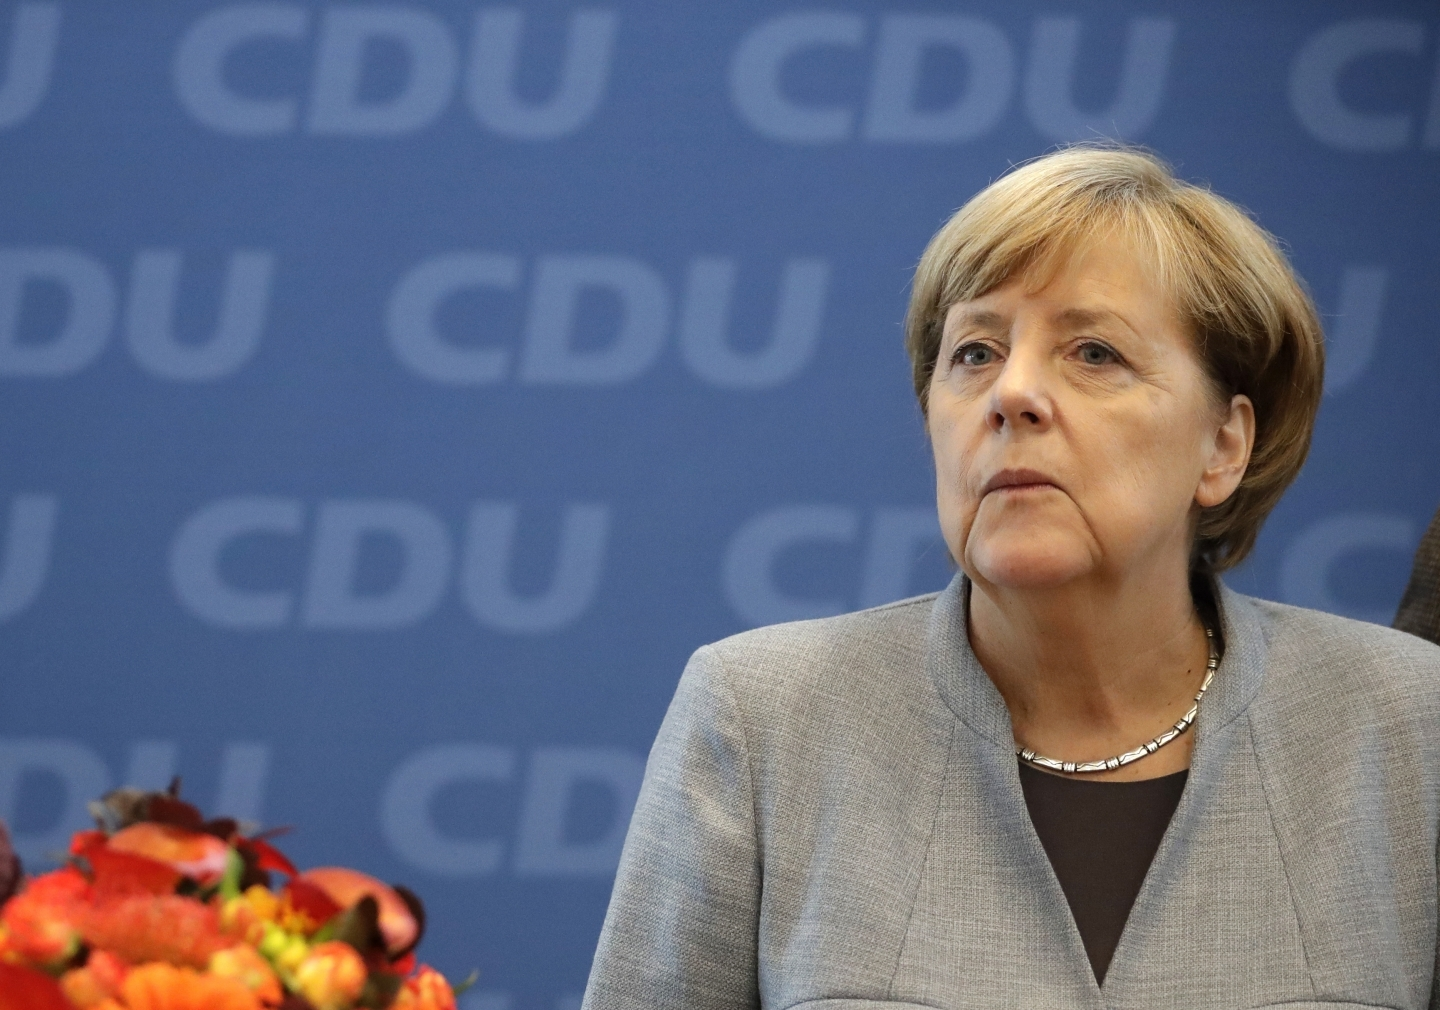 German Chancellor Angela Merkel looks on prior to a meeting of the CDU in Berlin. (AP Photo/Matthias Schrader)